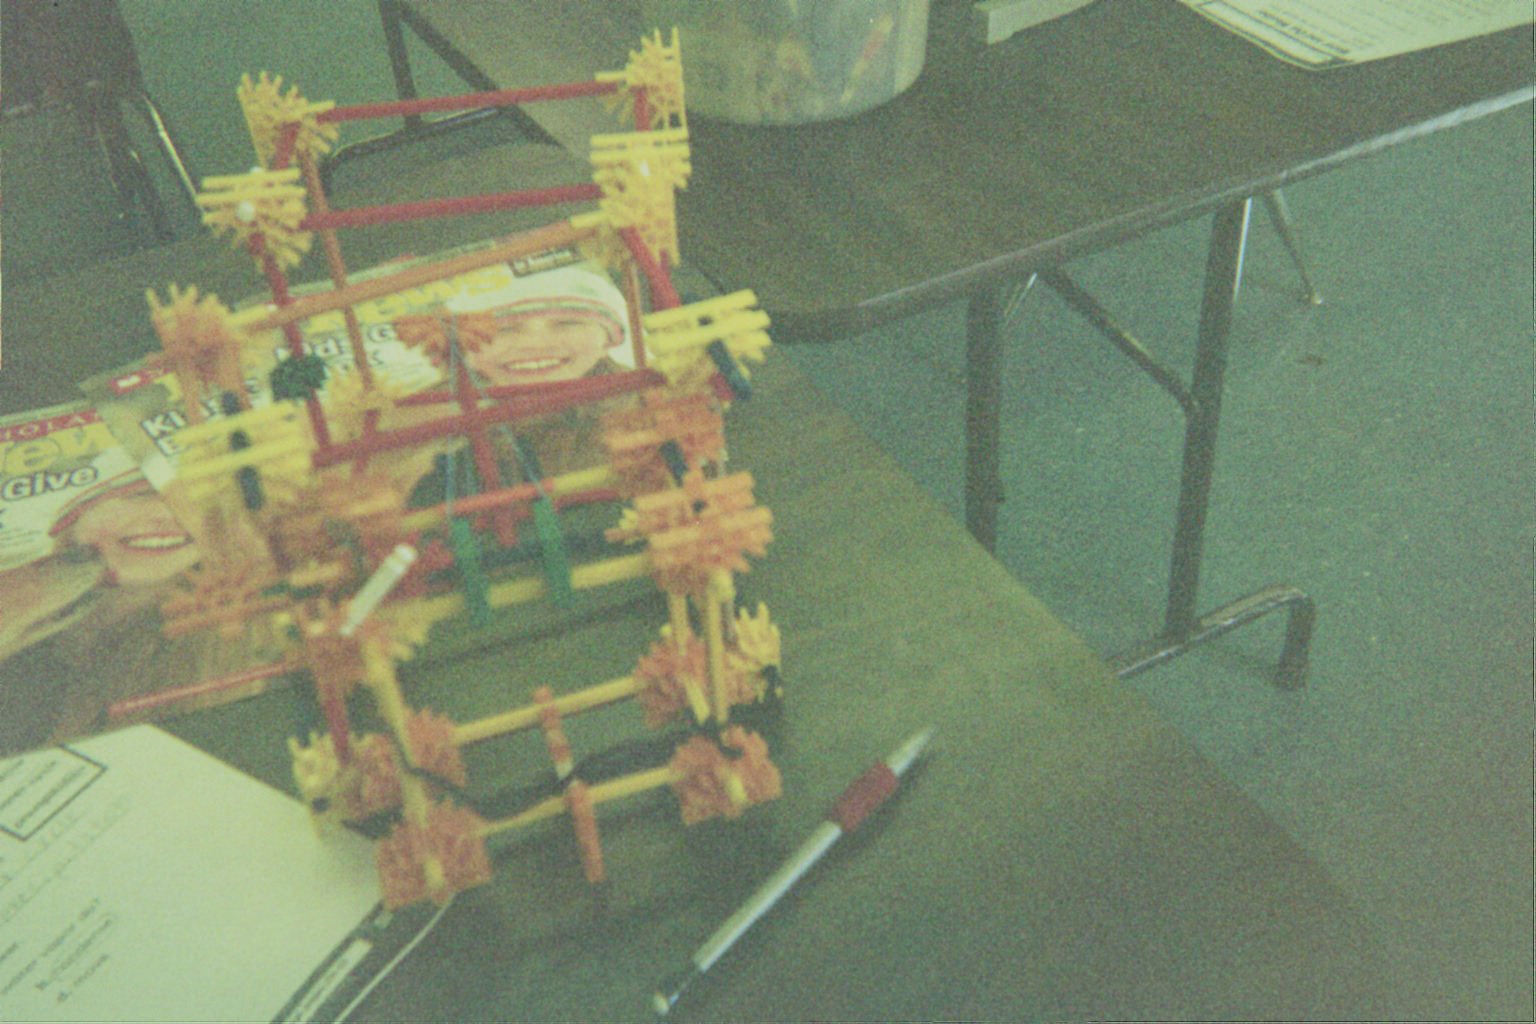 Picture of knex armor